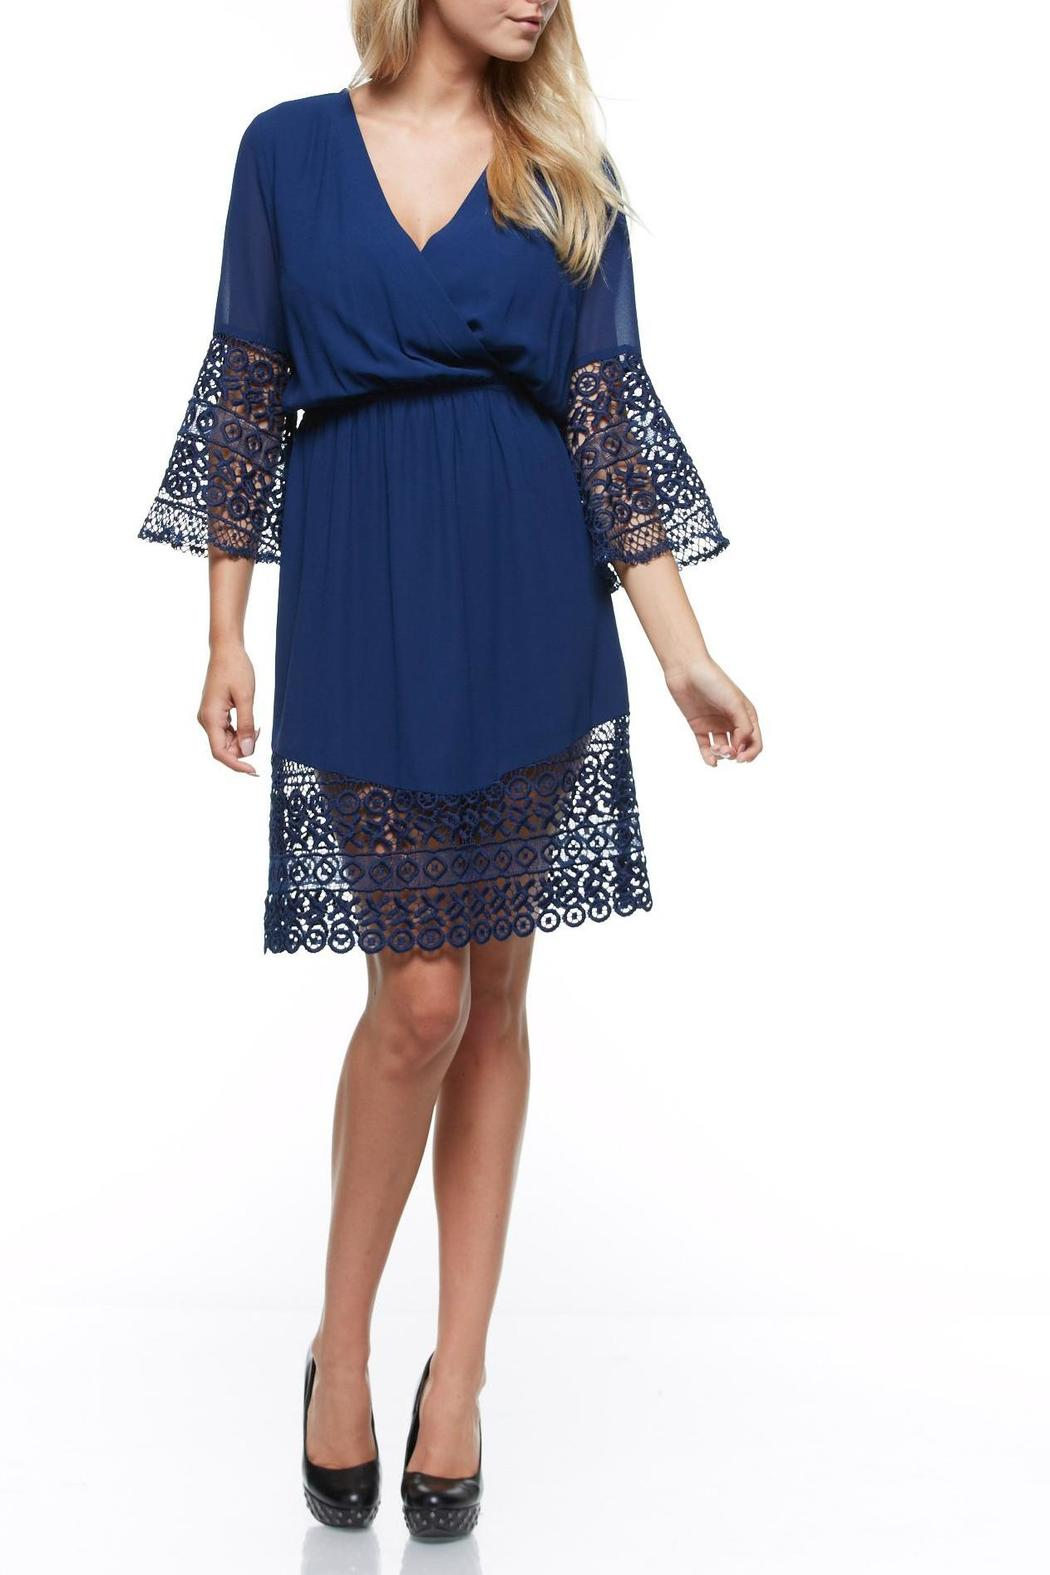 The Clothing Co Short Blue Dress - Front Cropped Image